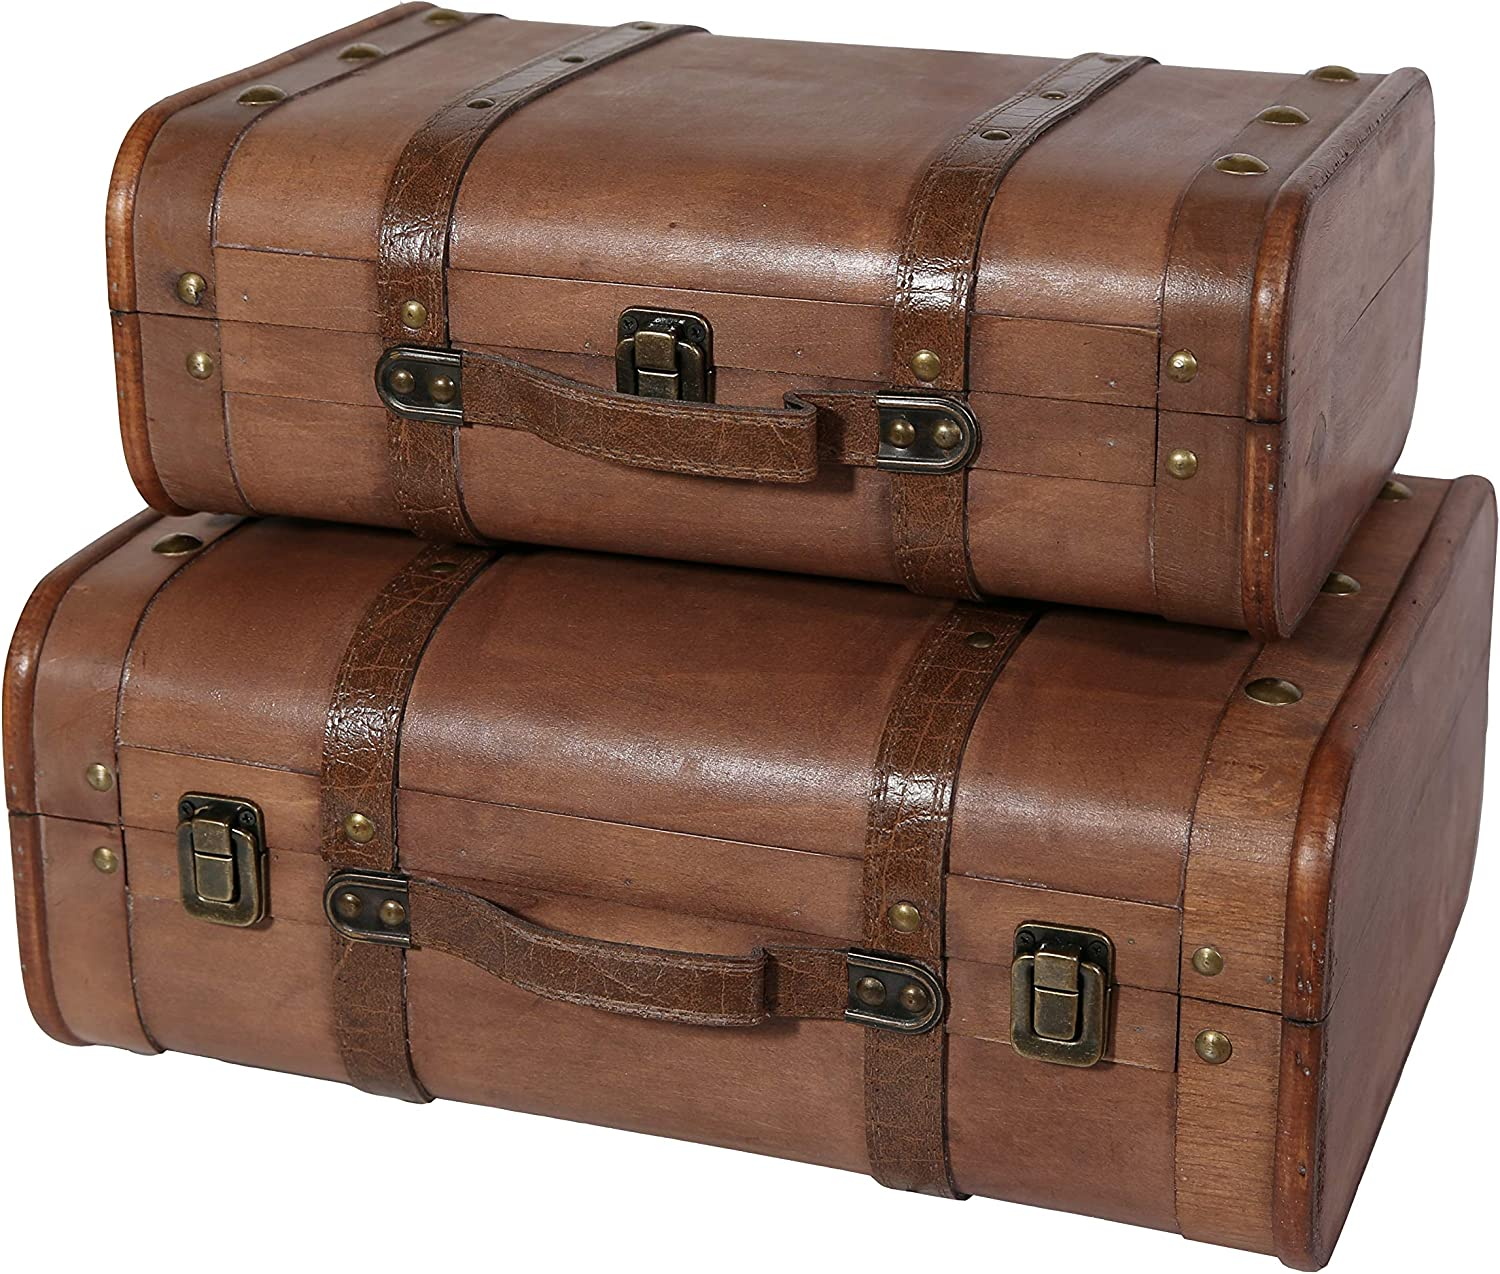 Soul & Lane Abby Decorative Wooden Chest Suitcases - Set of 2 | Storage Wood Trunk Boxes